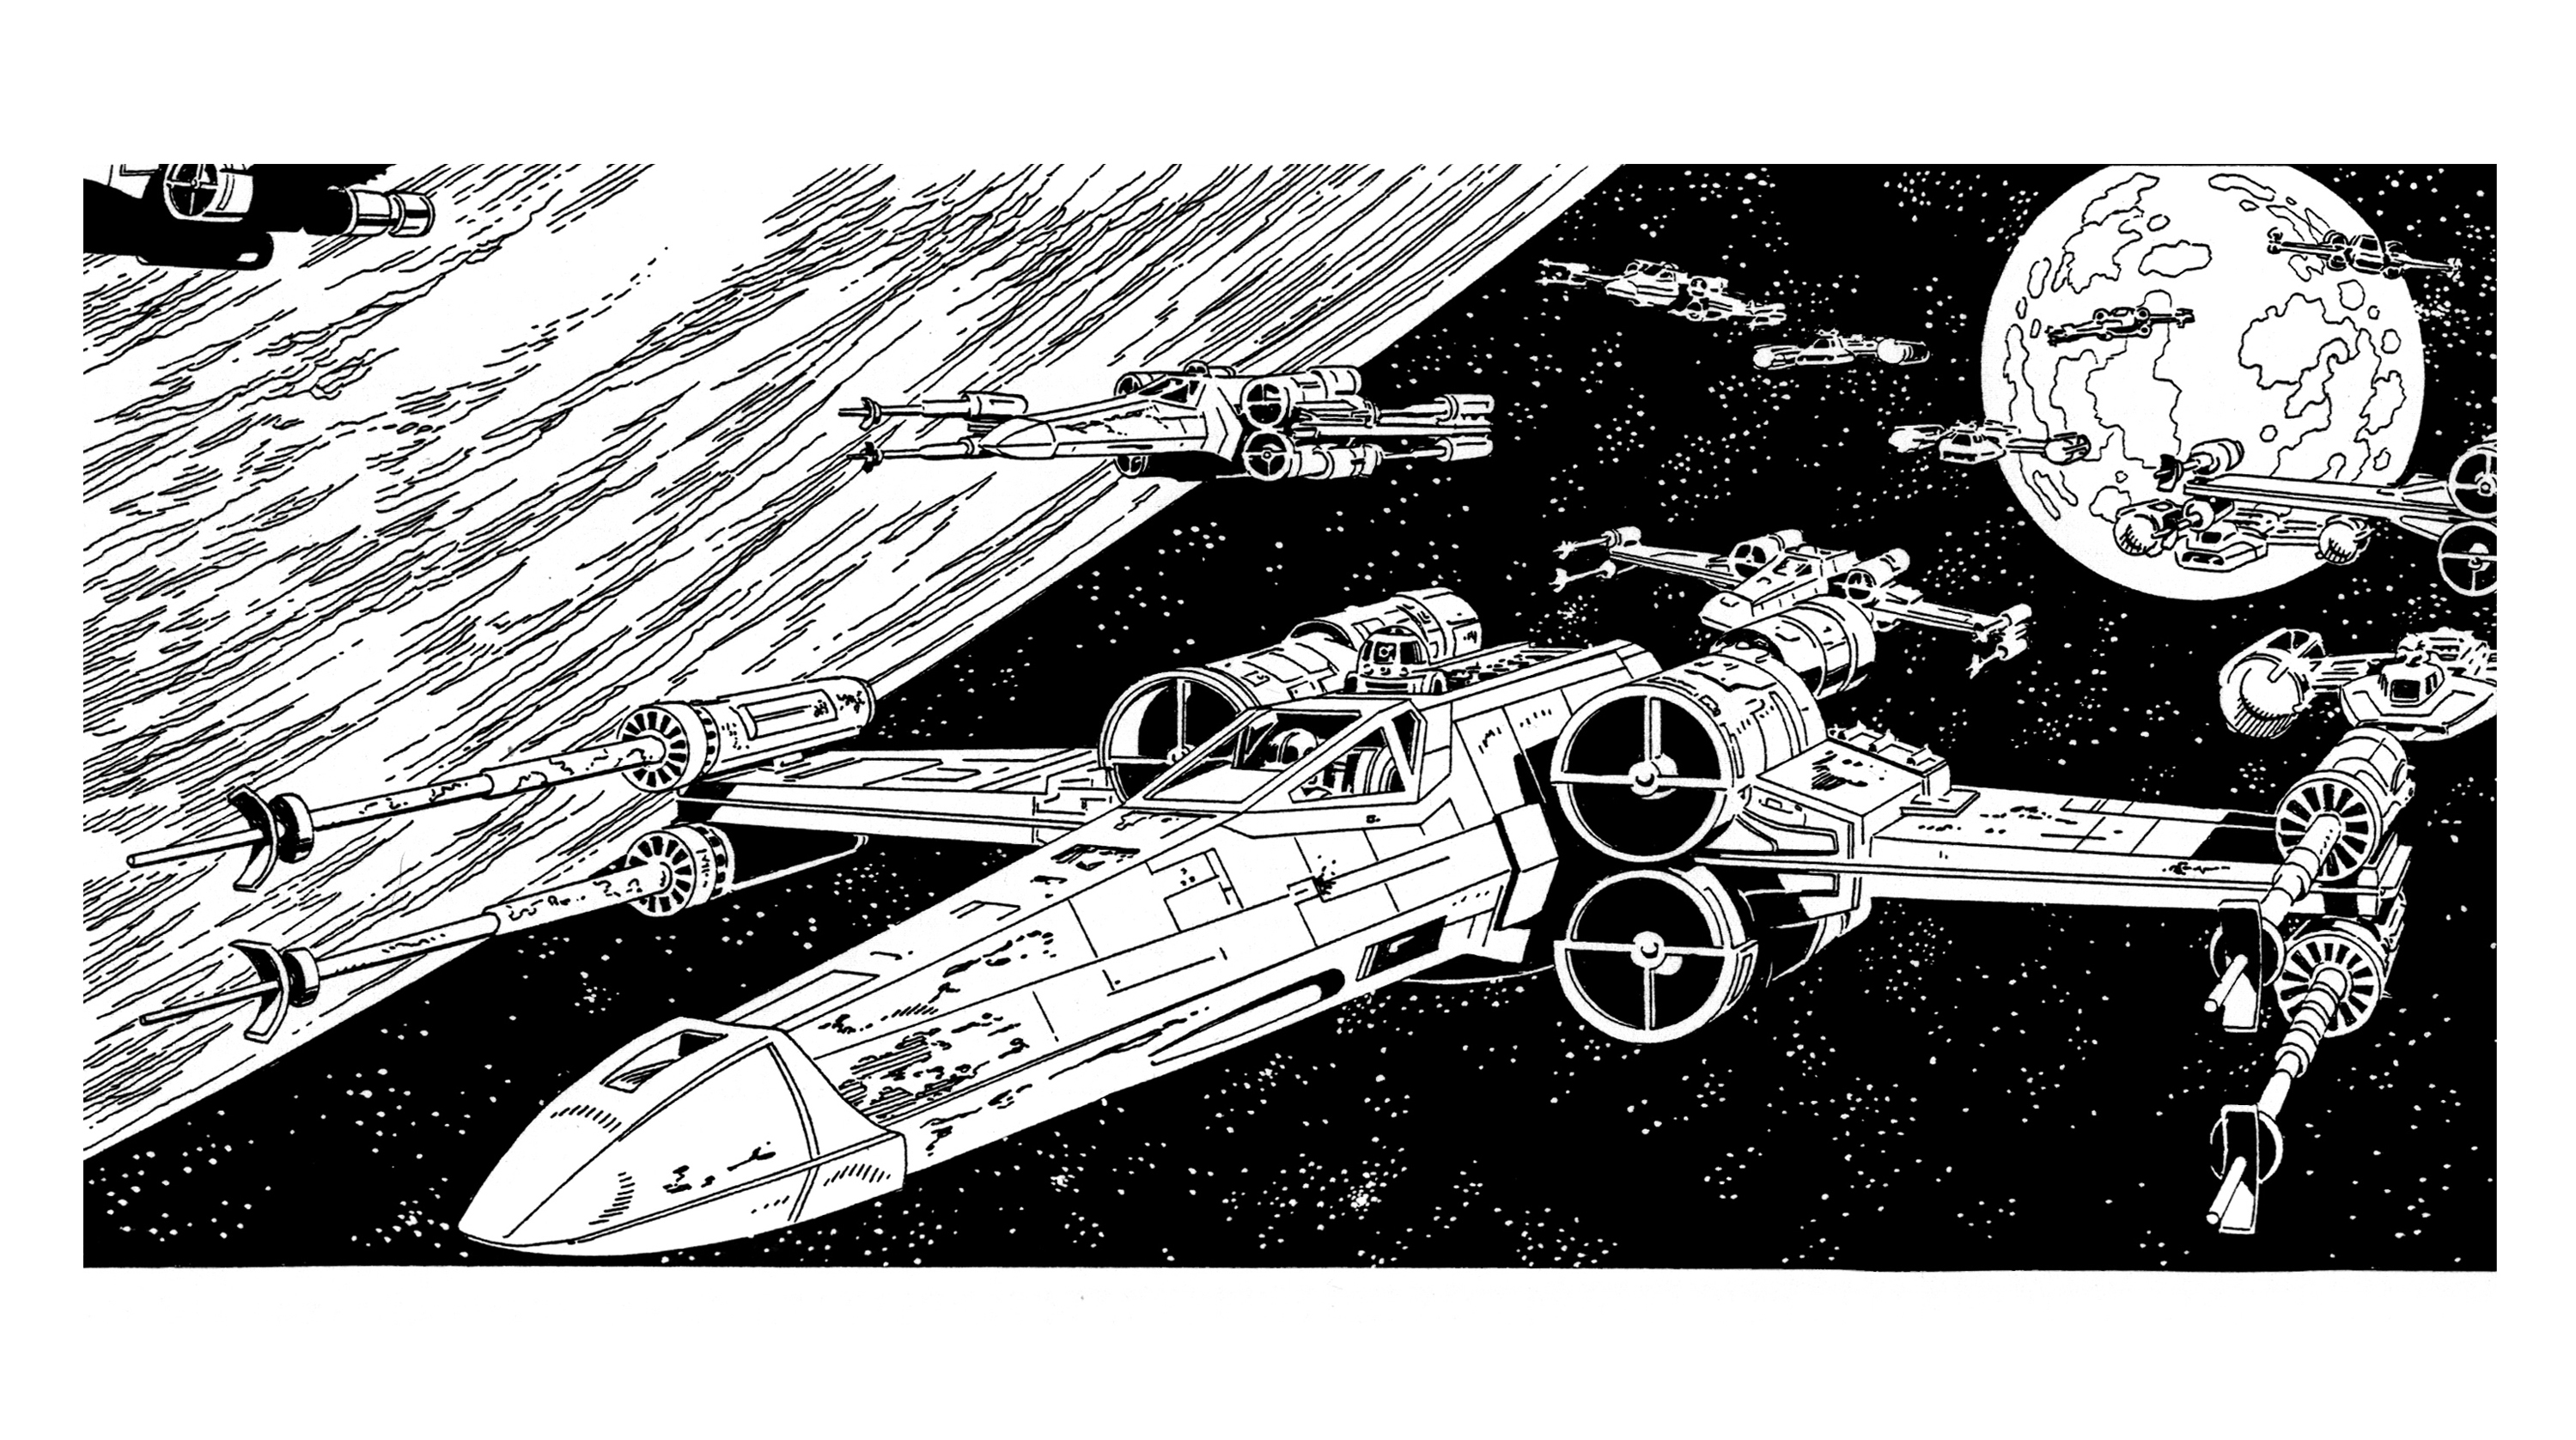 Rebel Ships Over Yavin